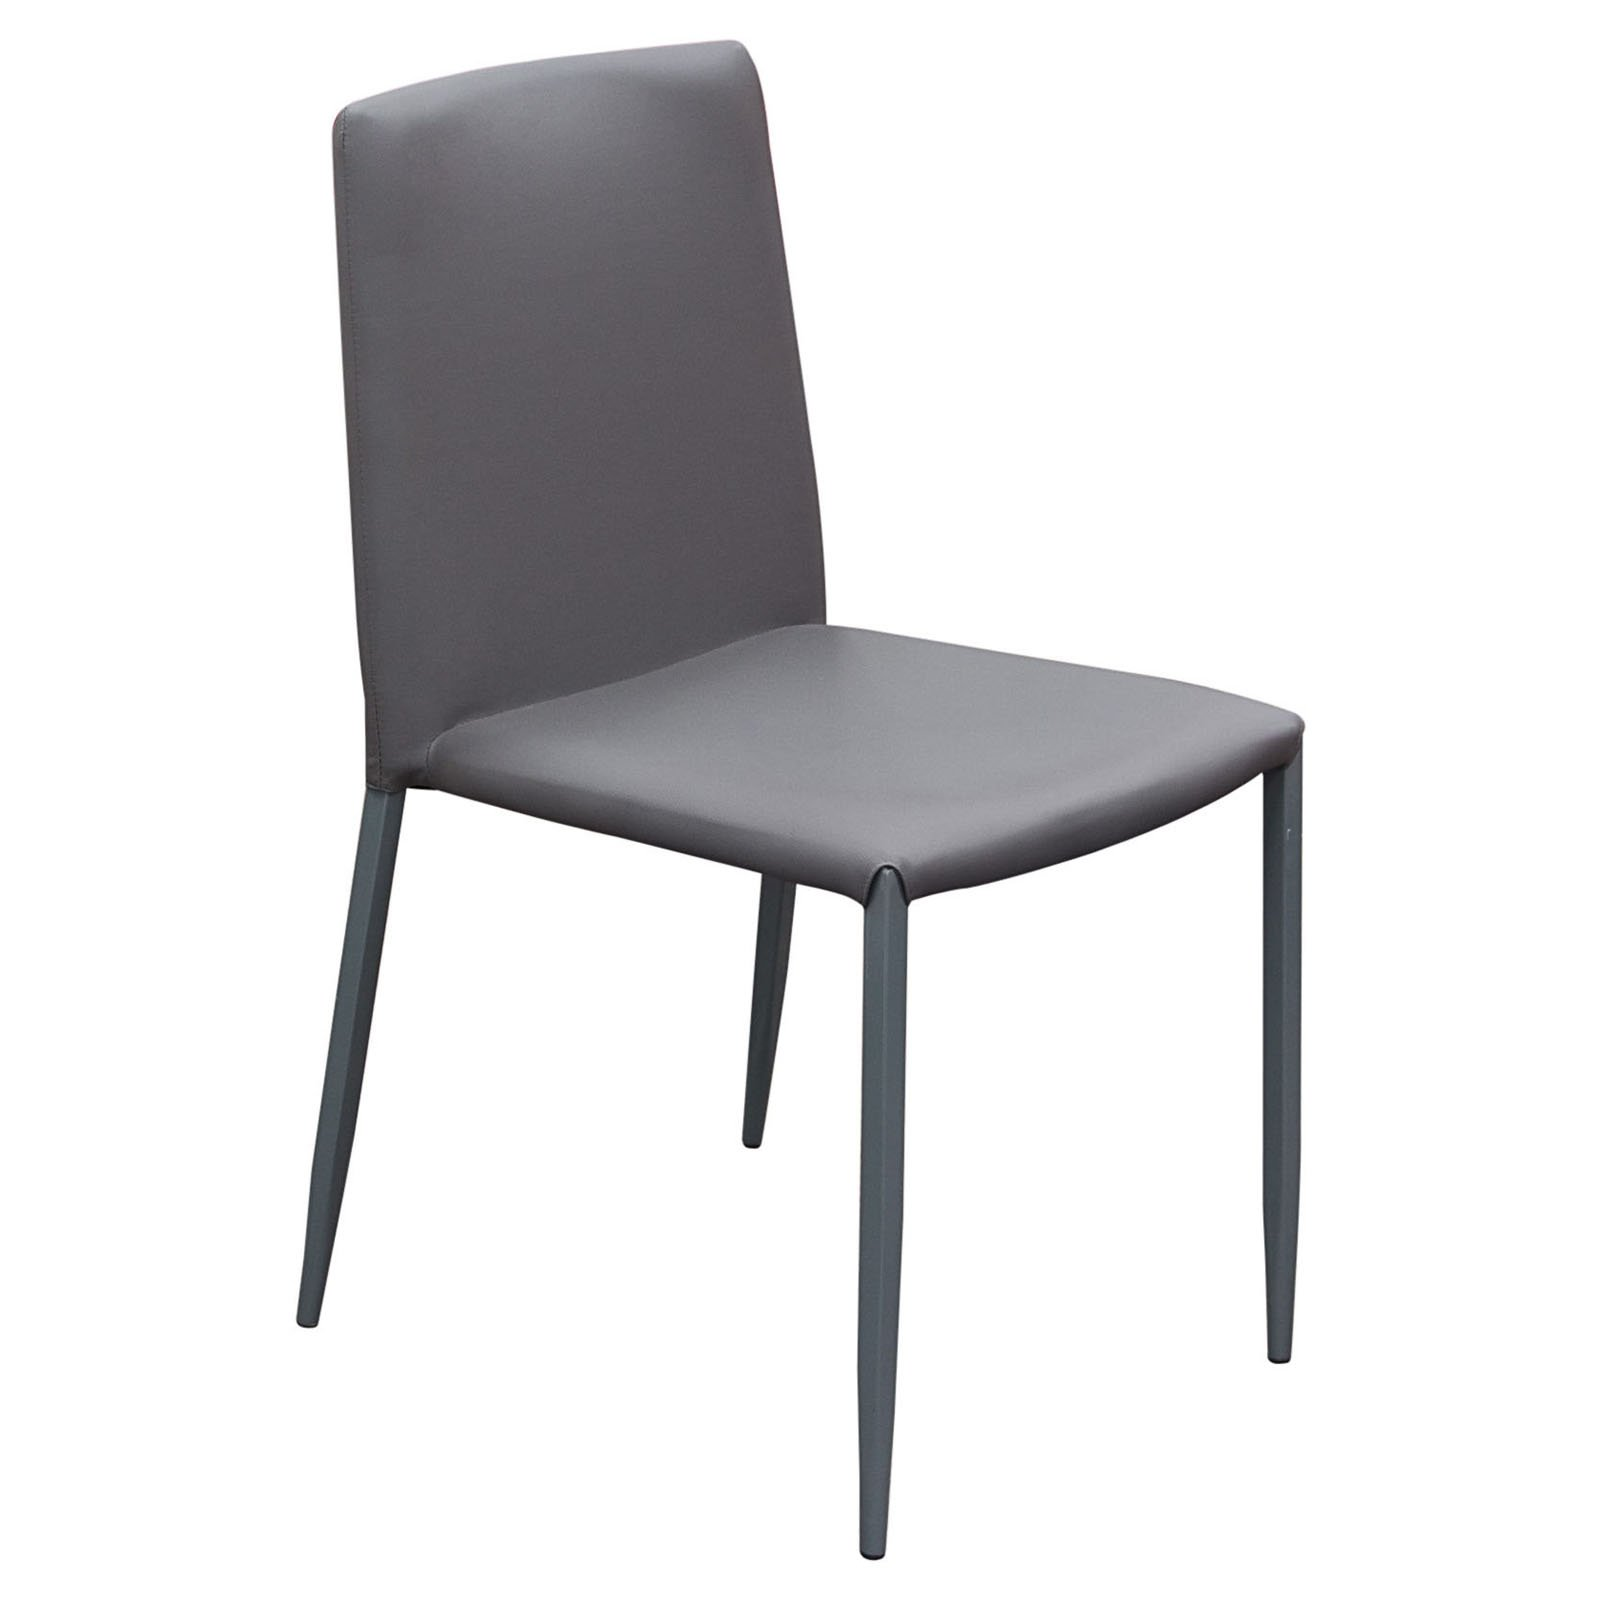 Diamond Sofa Stackable Dining Chairs - Set of 2 - Grey